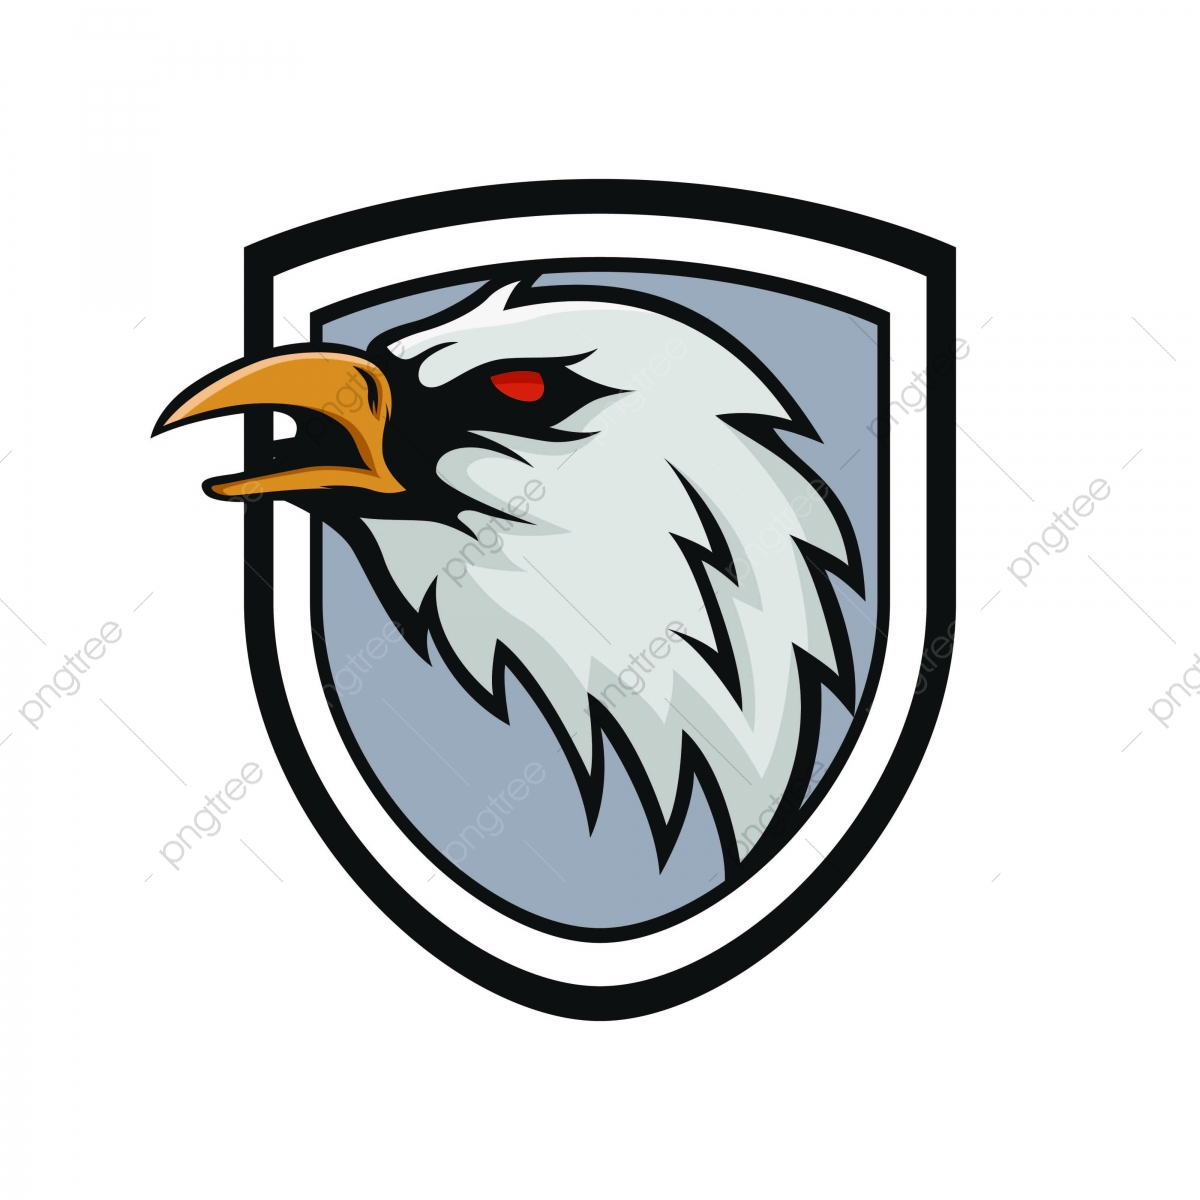 hight resolution of commercial use resource upgrade to premium plan and get license authorization upgradenow eagle vector logo mascot